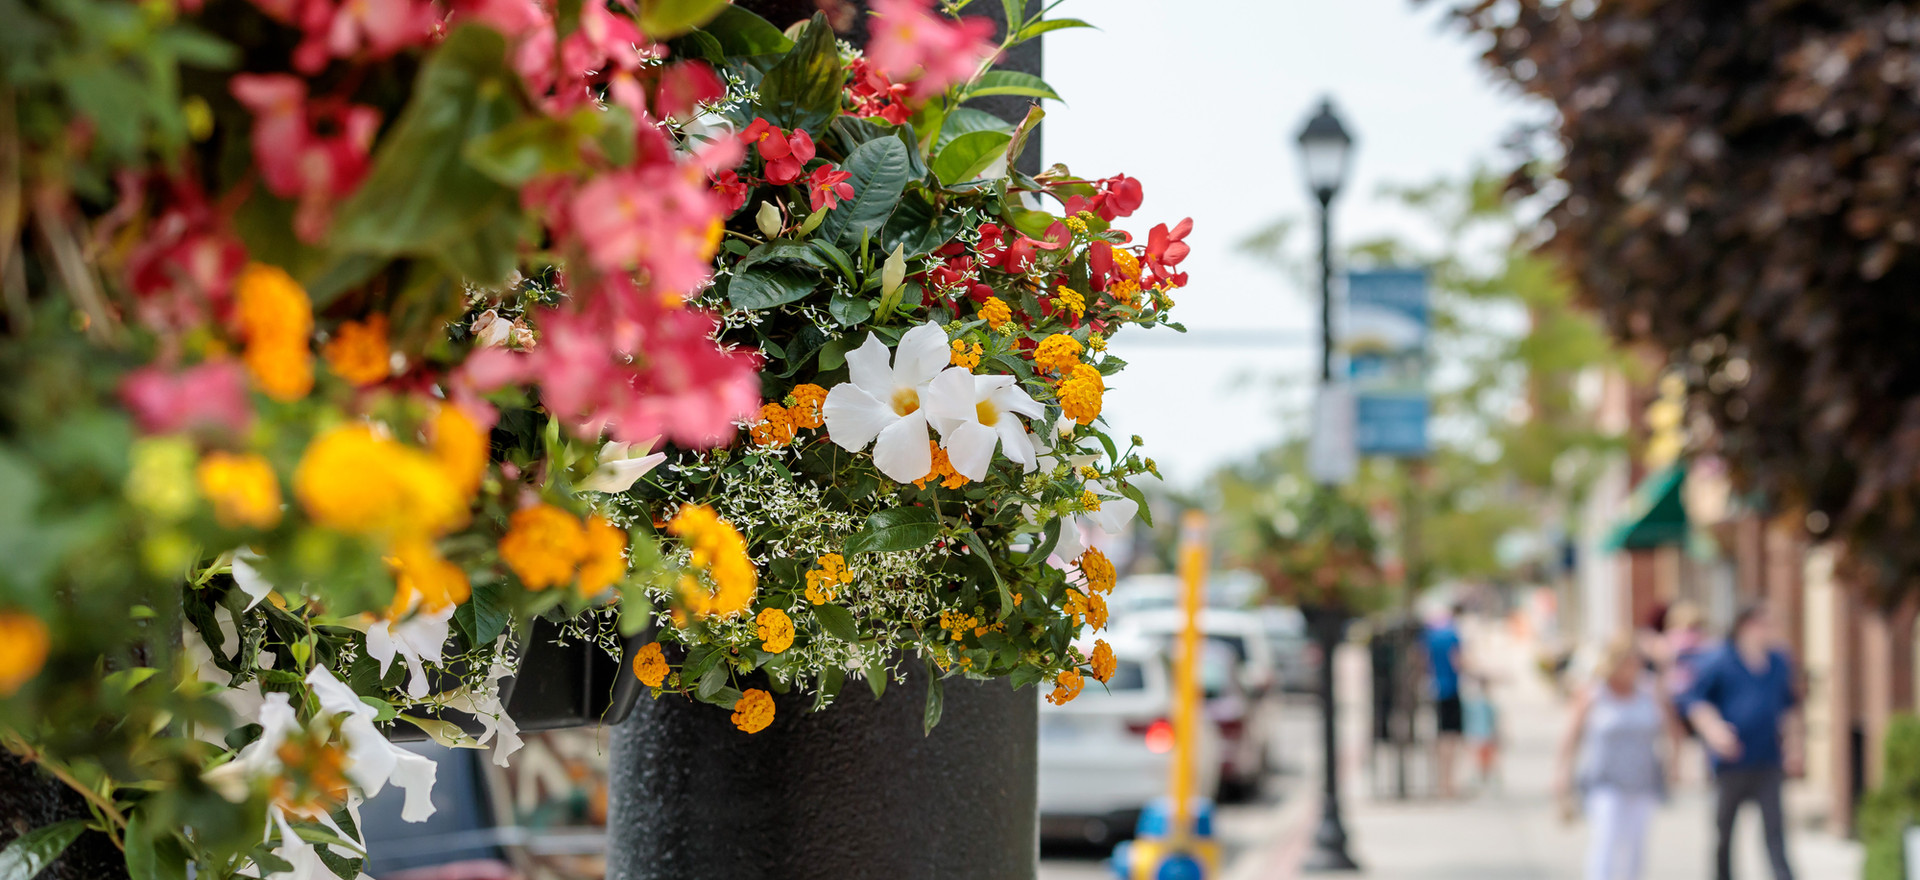 Main Street Picton Flower Baskets Photo Credit: © Daniel Vaughan (vaughangroup.ca)